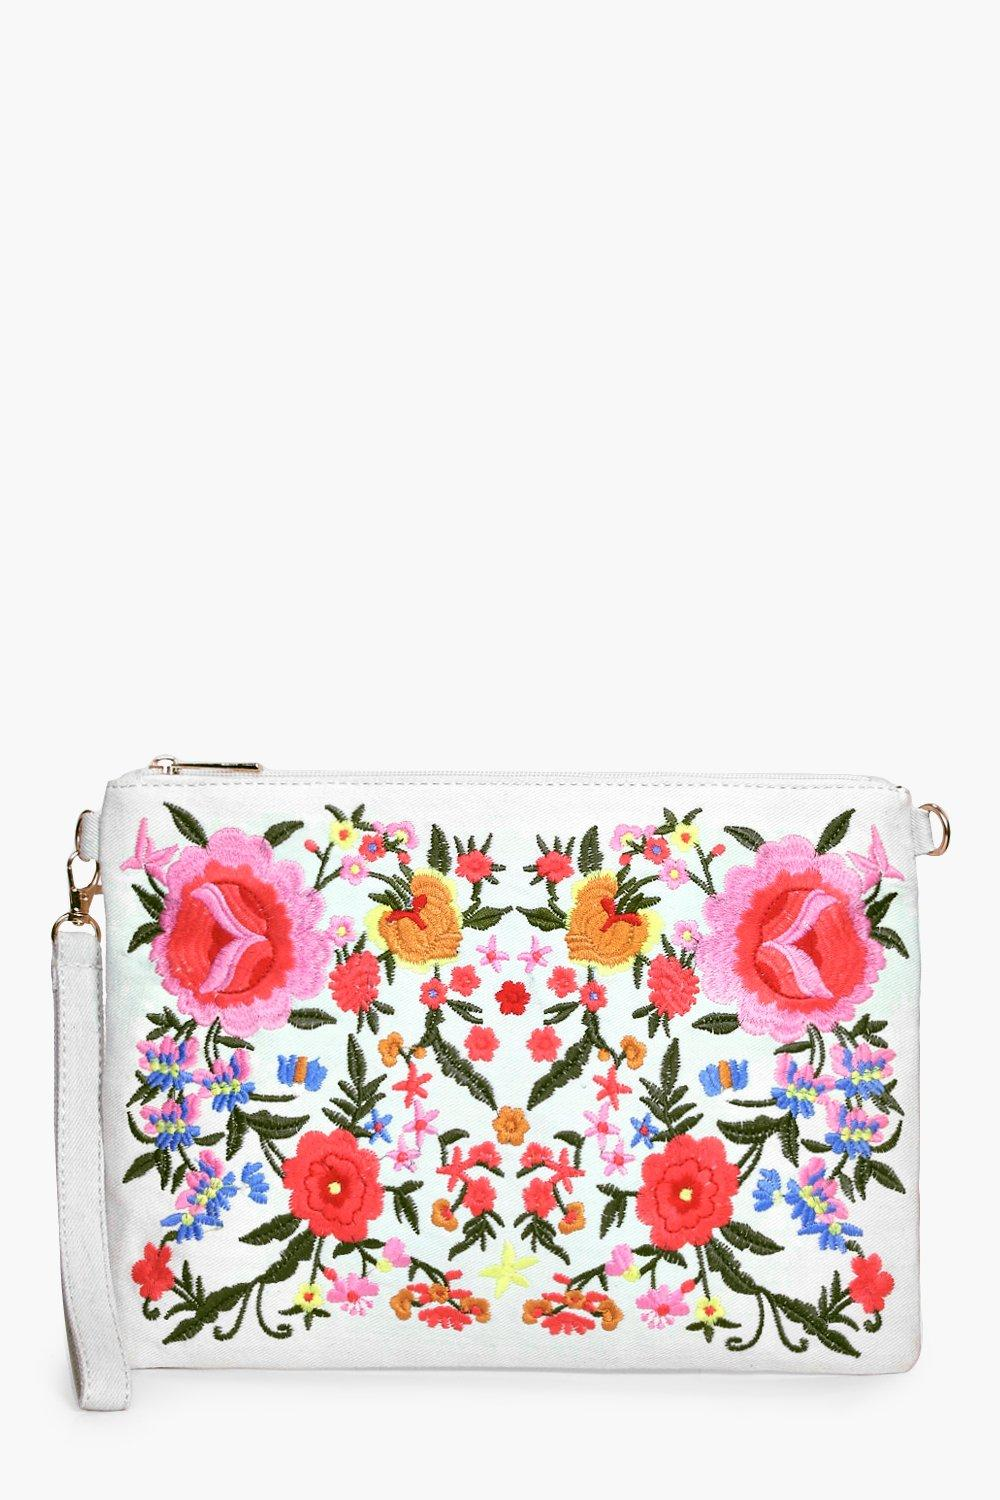 All Over Embroidered Denim Clutch - white - Lisa A